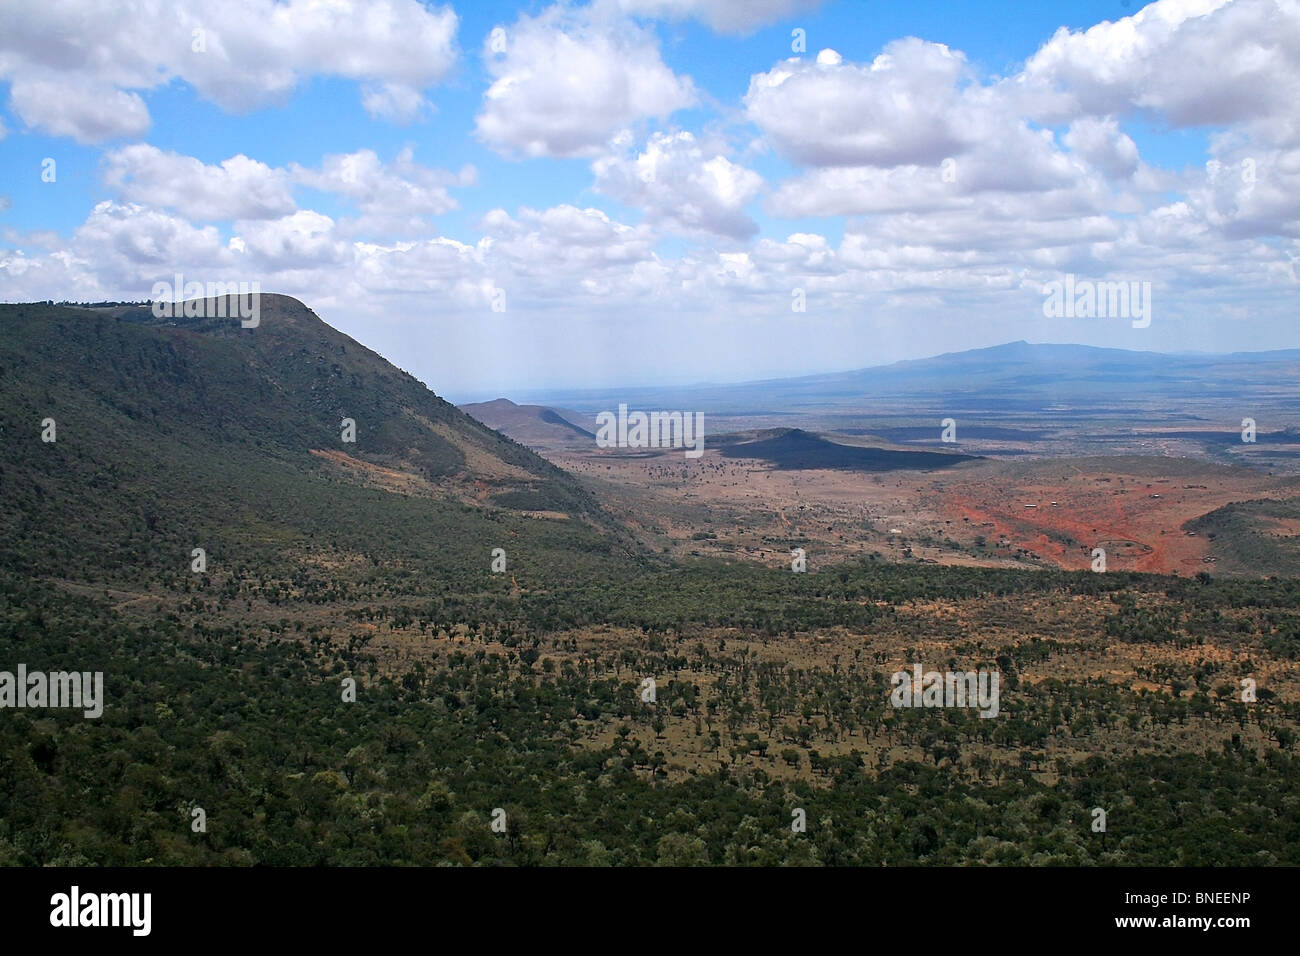 Landscape view of the Great Rift Valley in Kenya, East Africa Stock Photo